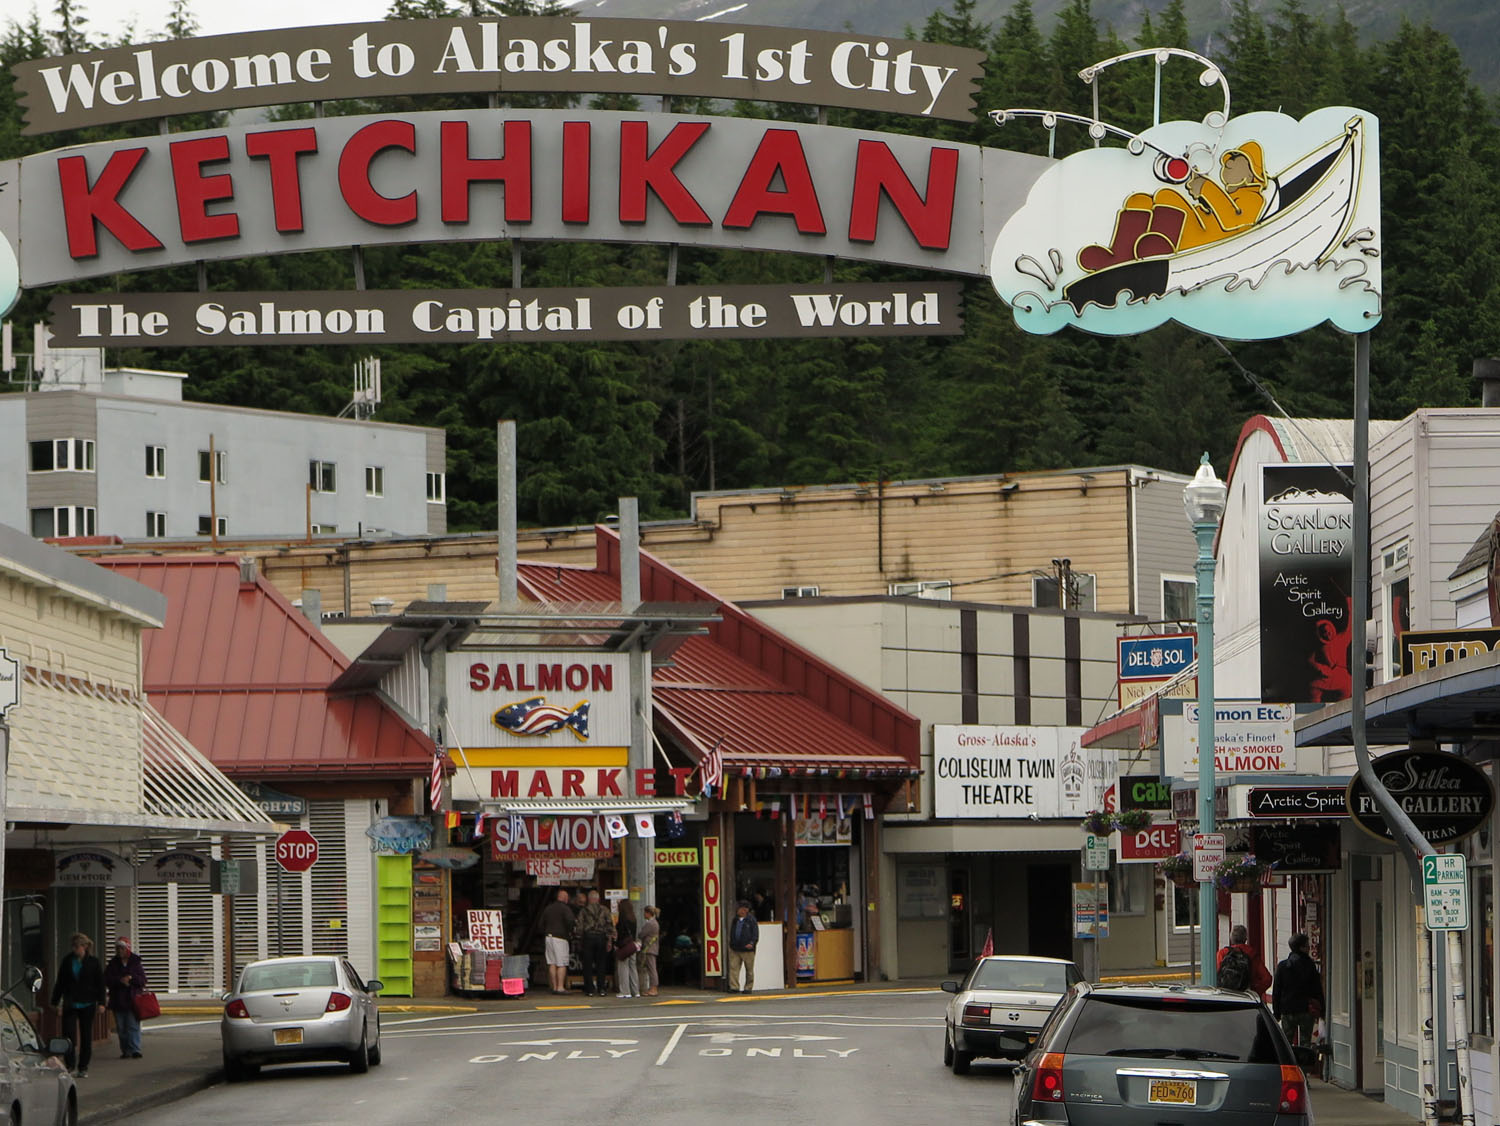 Alaska-Ketchikan-Welcome